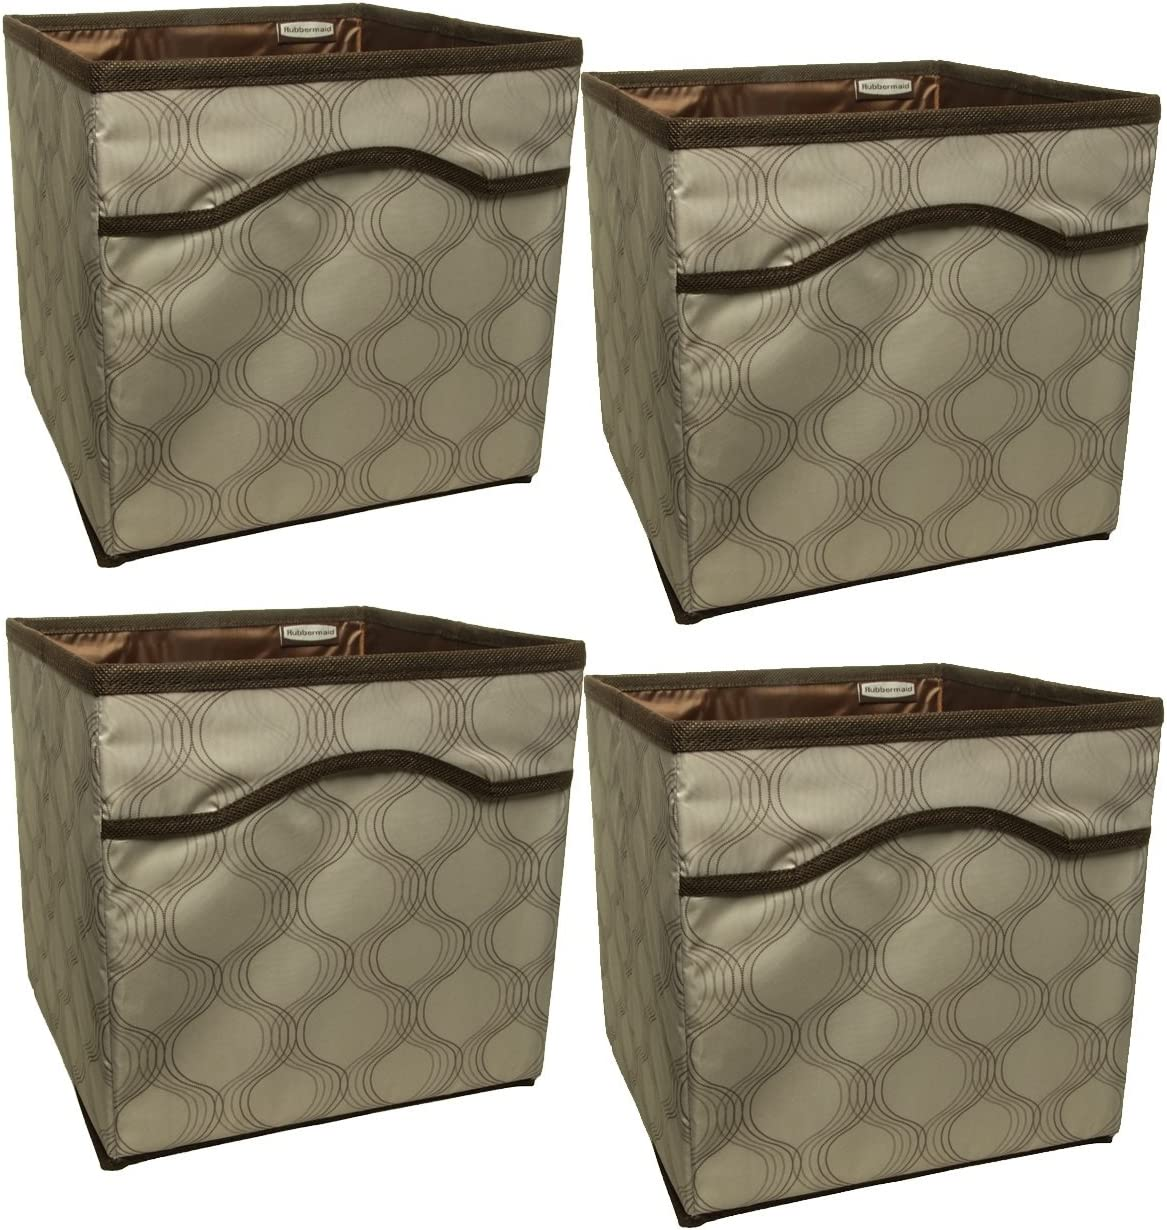 Rubbermaid (4 Pack) Collapsible Beige Canvas Basket Storage Containers Cubes Bins Folding Set